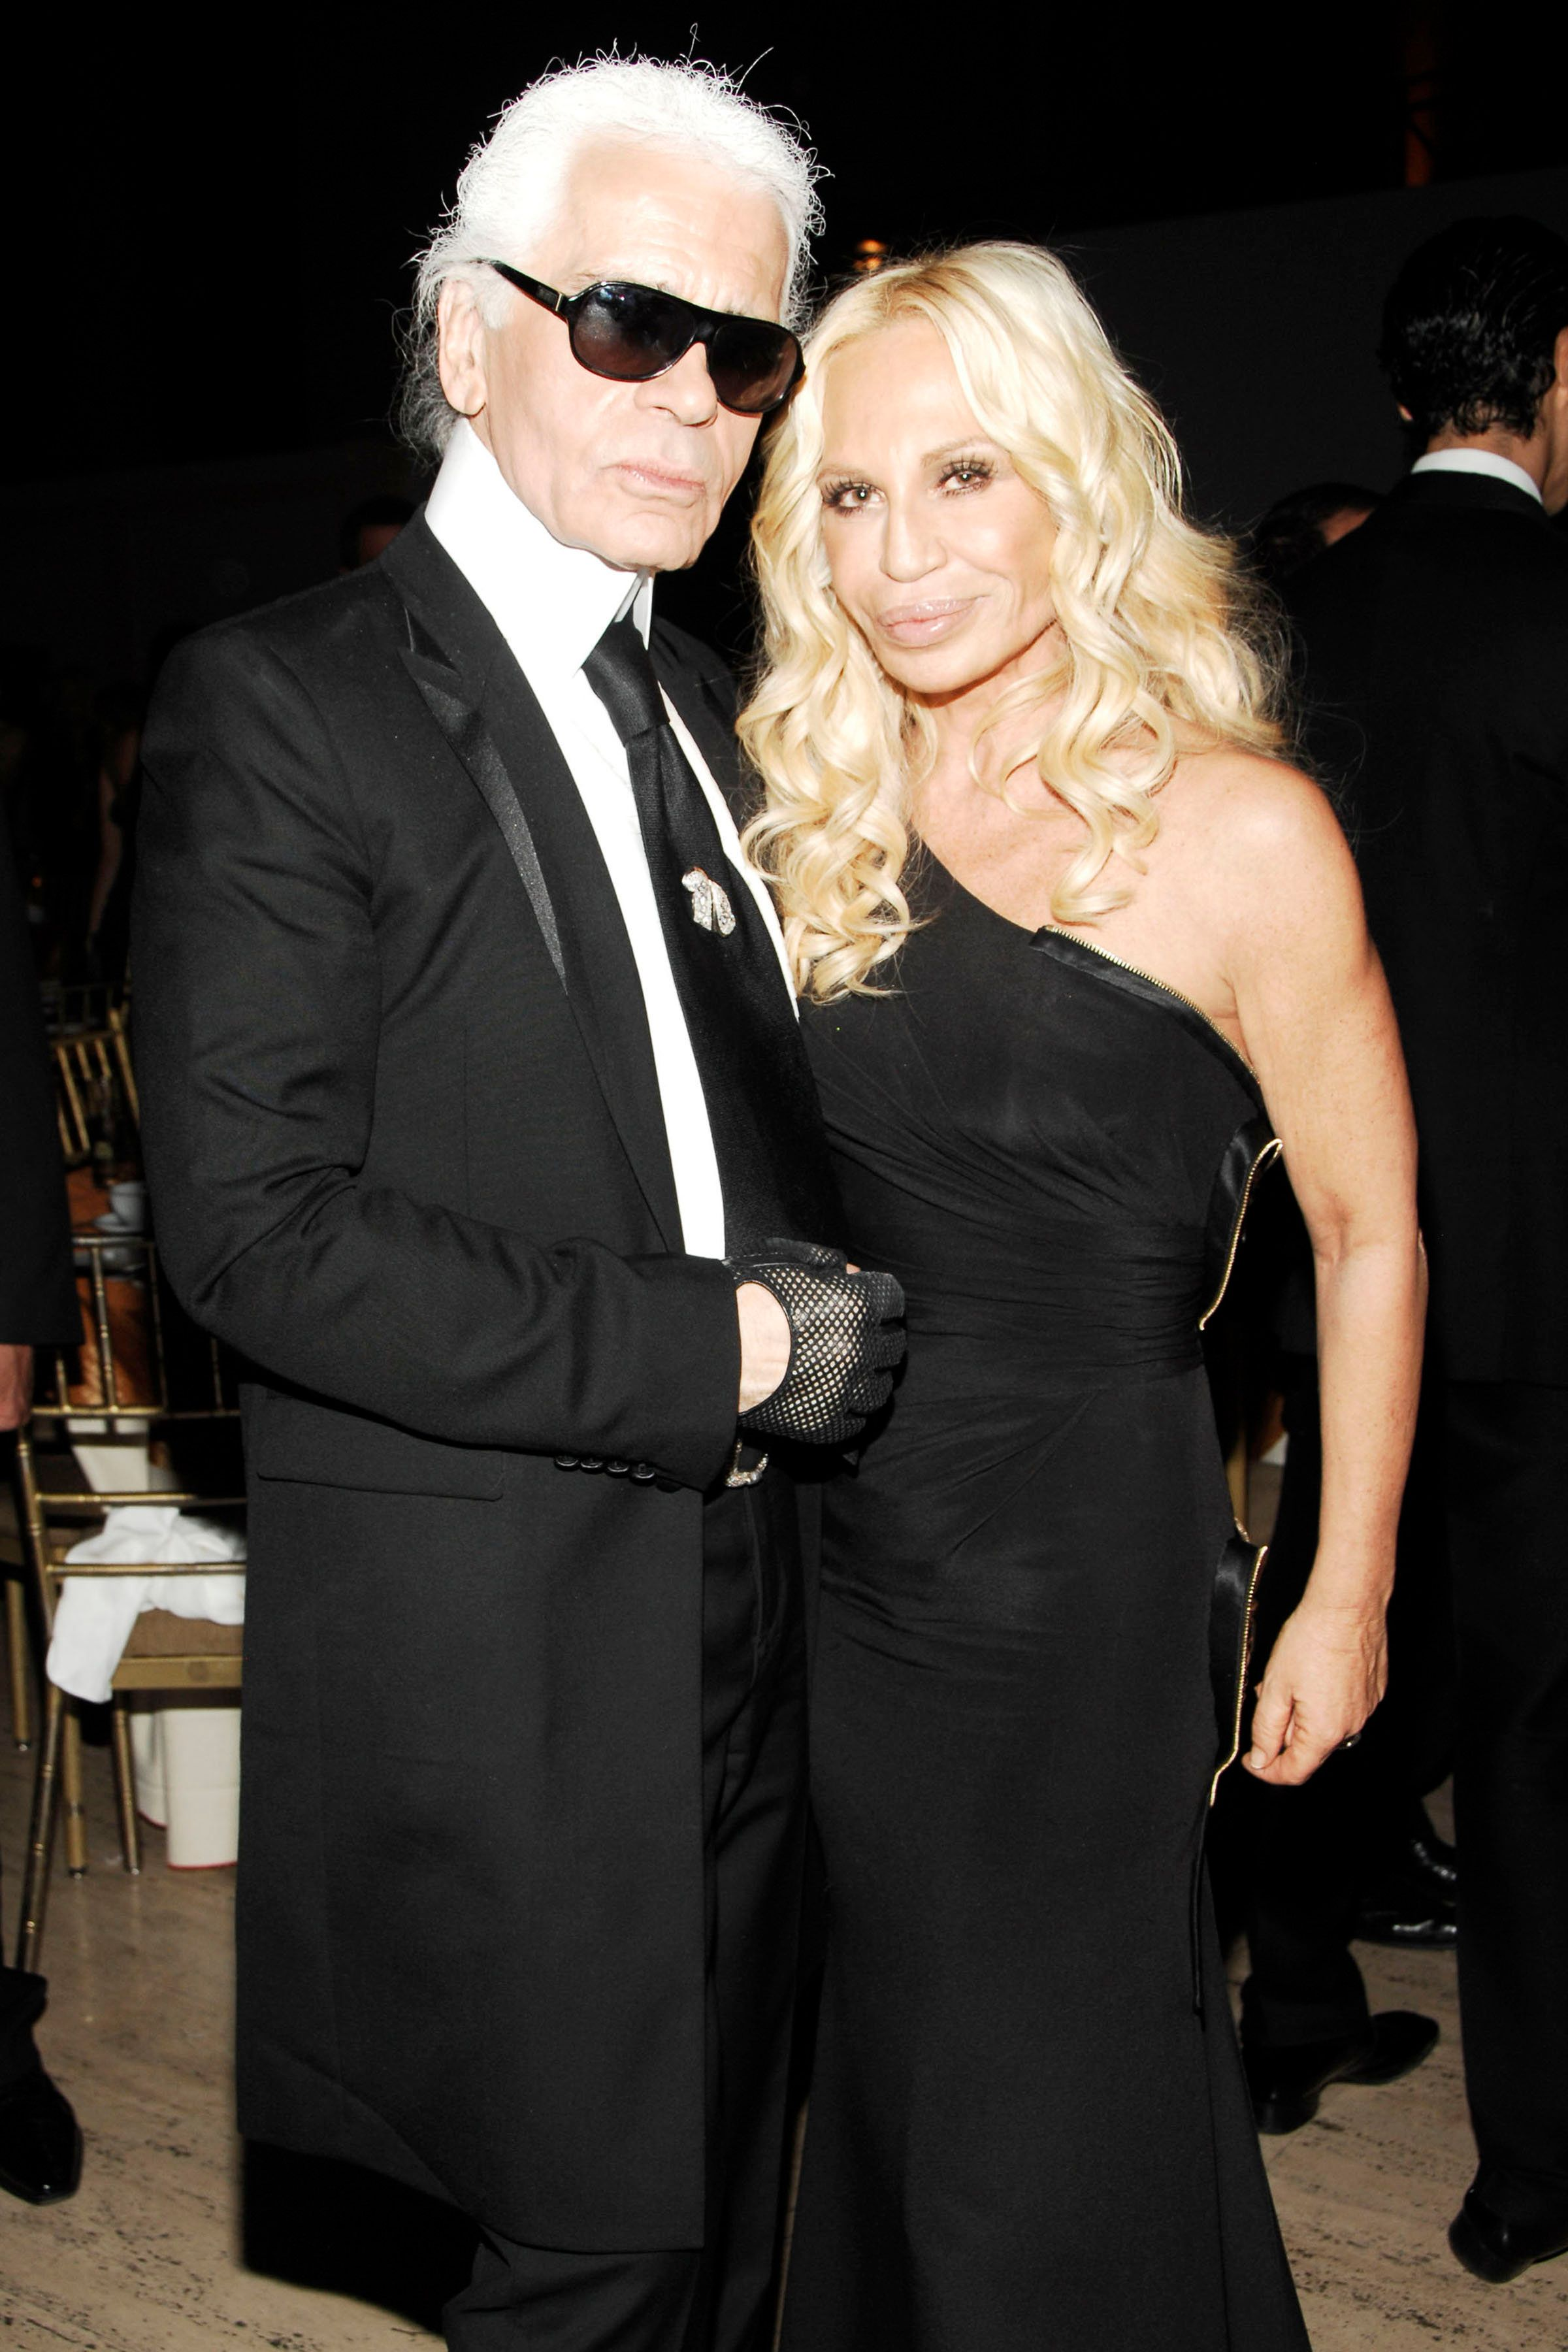 Donatella Versace Leads Tributes To Karl Lagerfeld As Fashion World Remembers Chanel